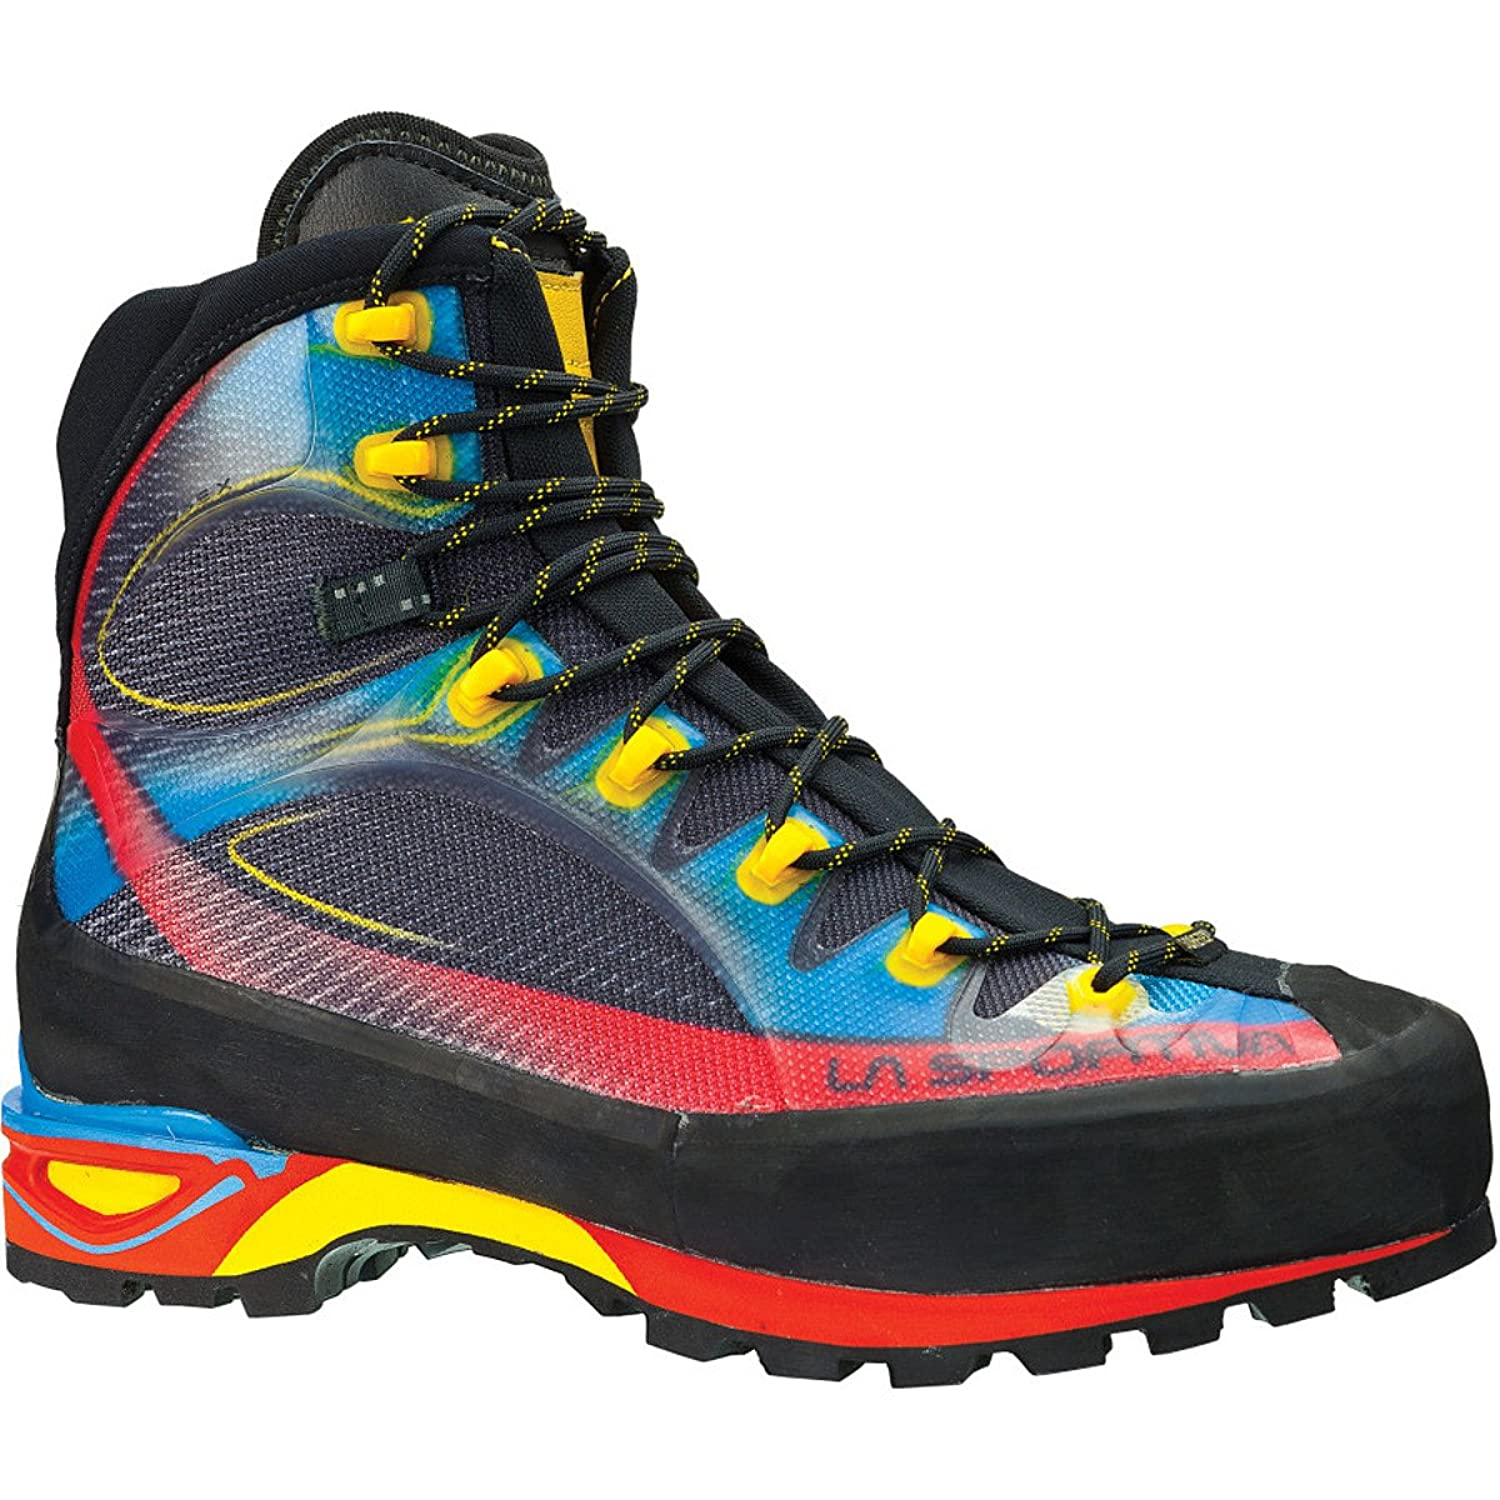 La Sportiva Men's Trango Cube GTX Mountaineering Boot